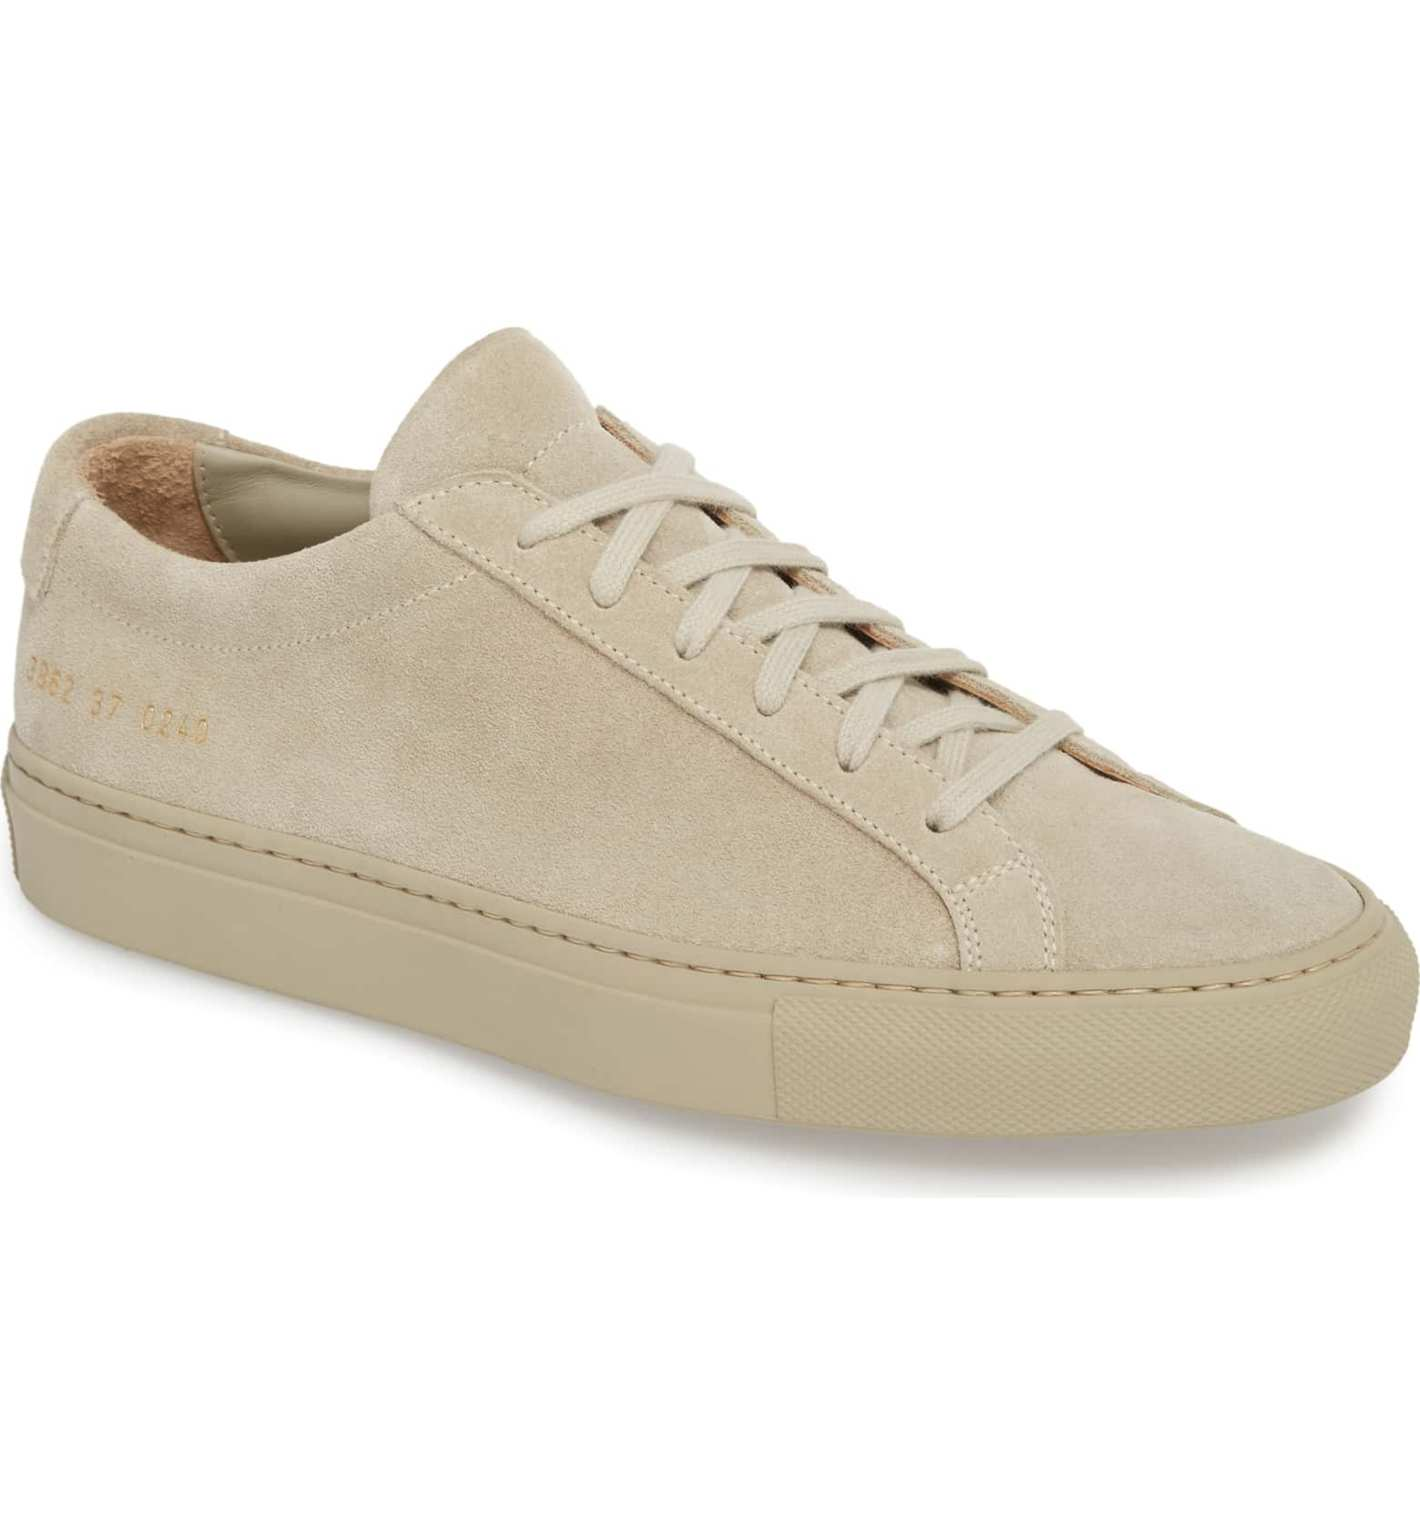 Common Projects Achilles Sneaker (Women), Taupe Suede